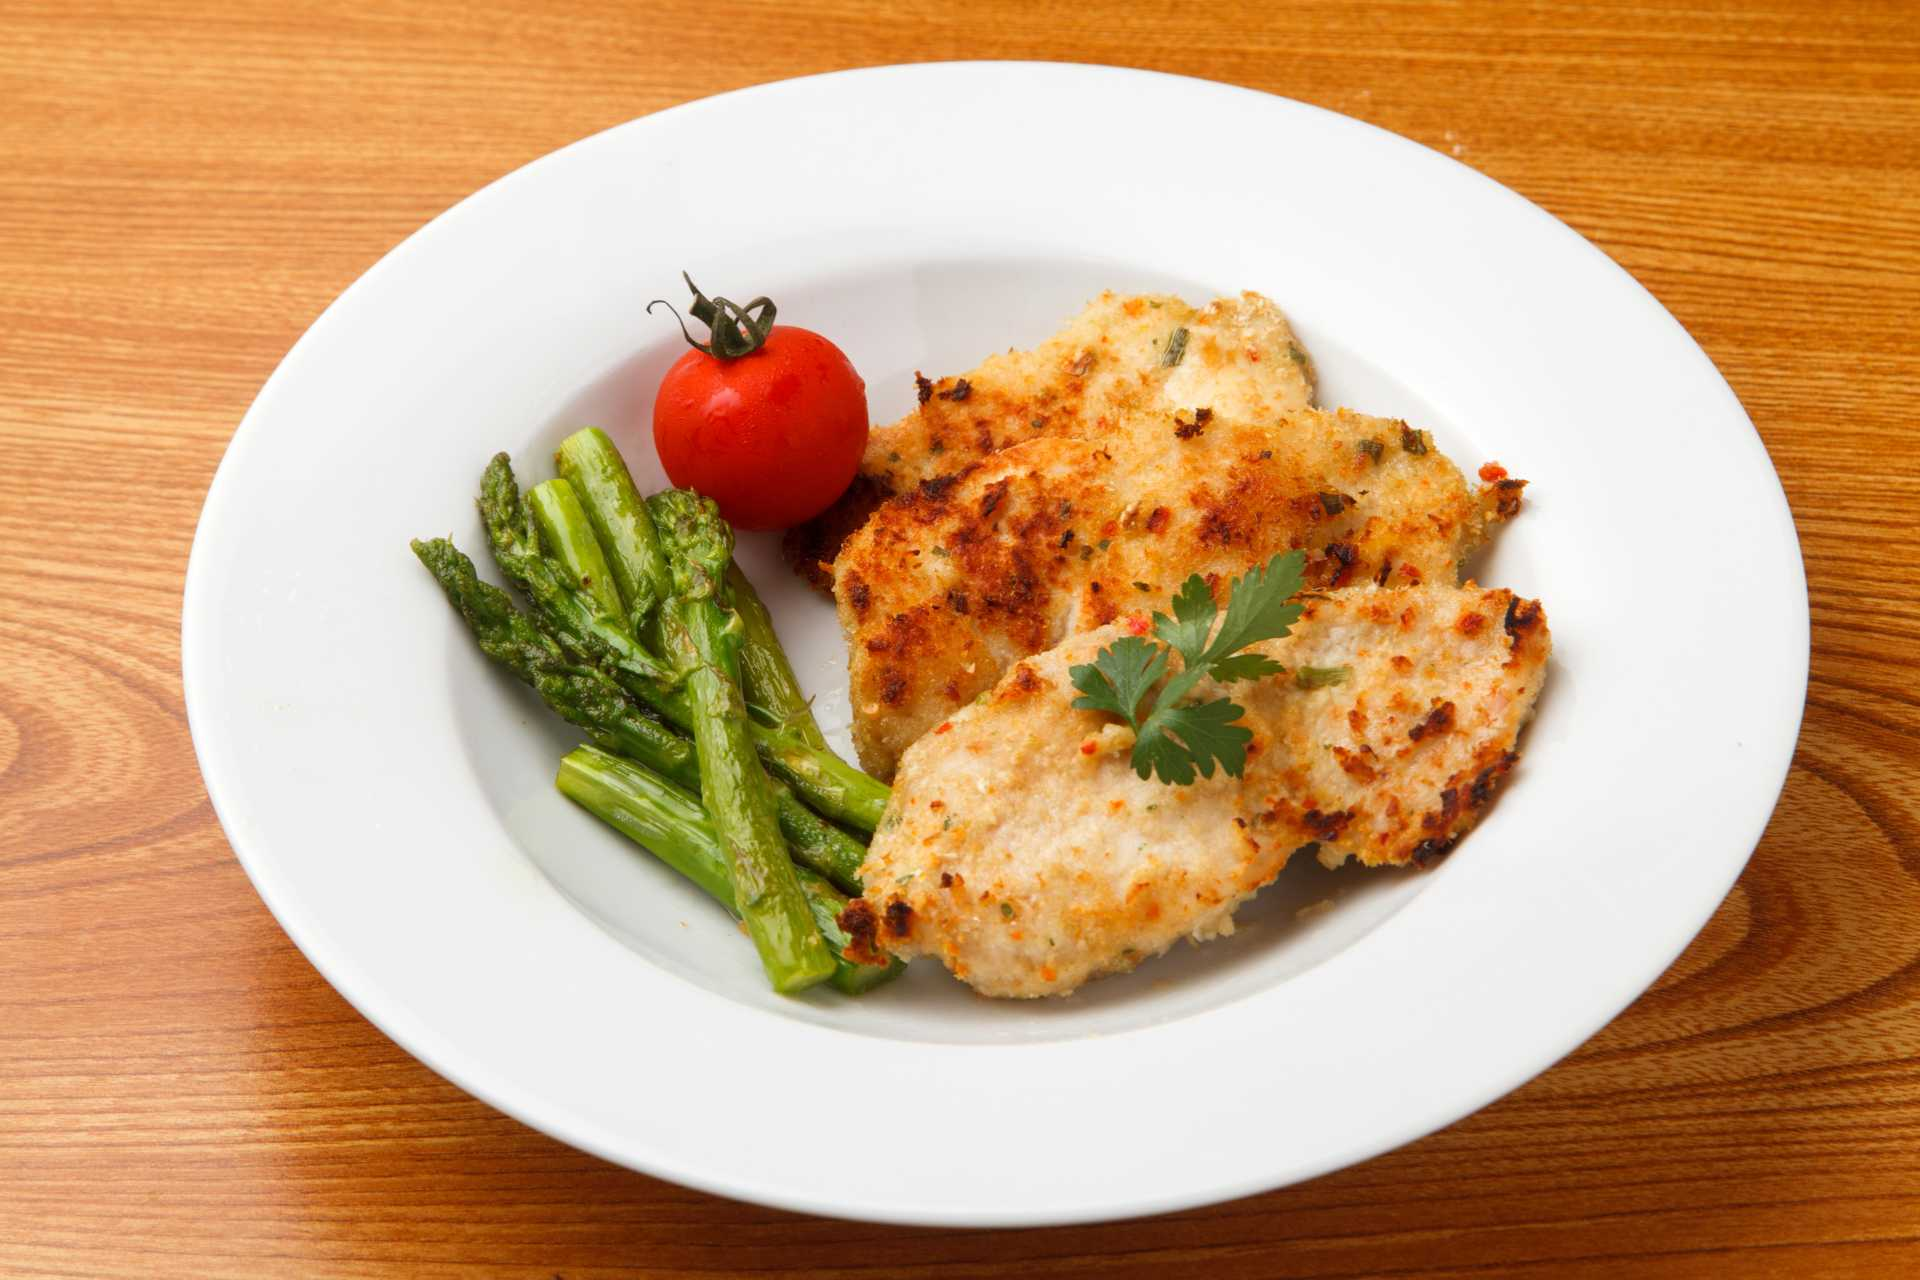 Oven Baked Buttermilk Fried Chicken - Pollo frito Horneado, Anti-cancer recipes - Cook For Your Life